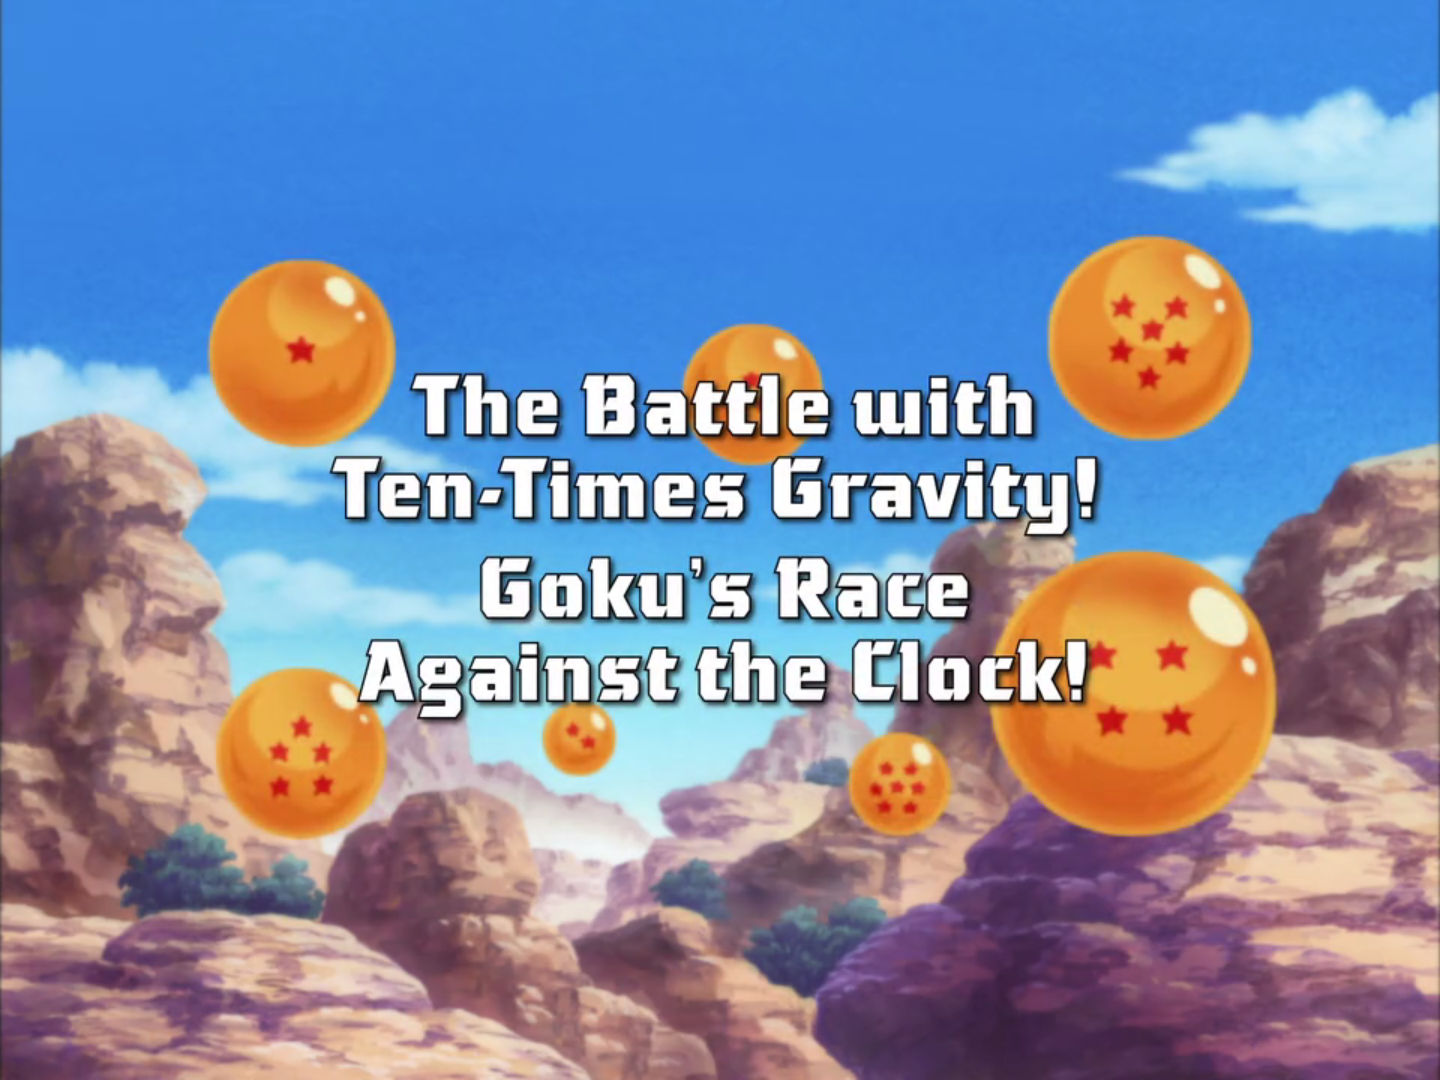 The Battle with Ten-Times Gravity! Goku's Race Against the Clock!